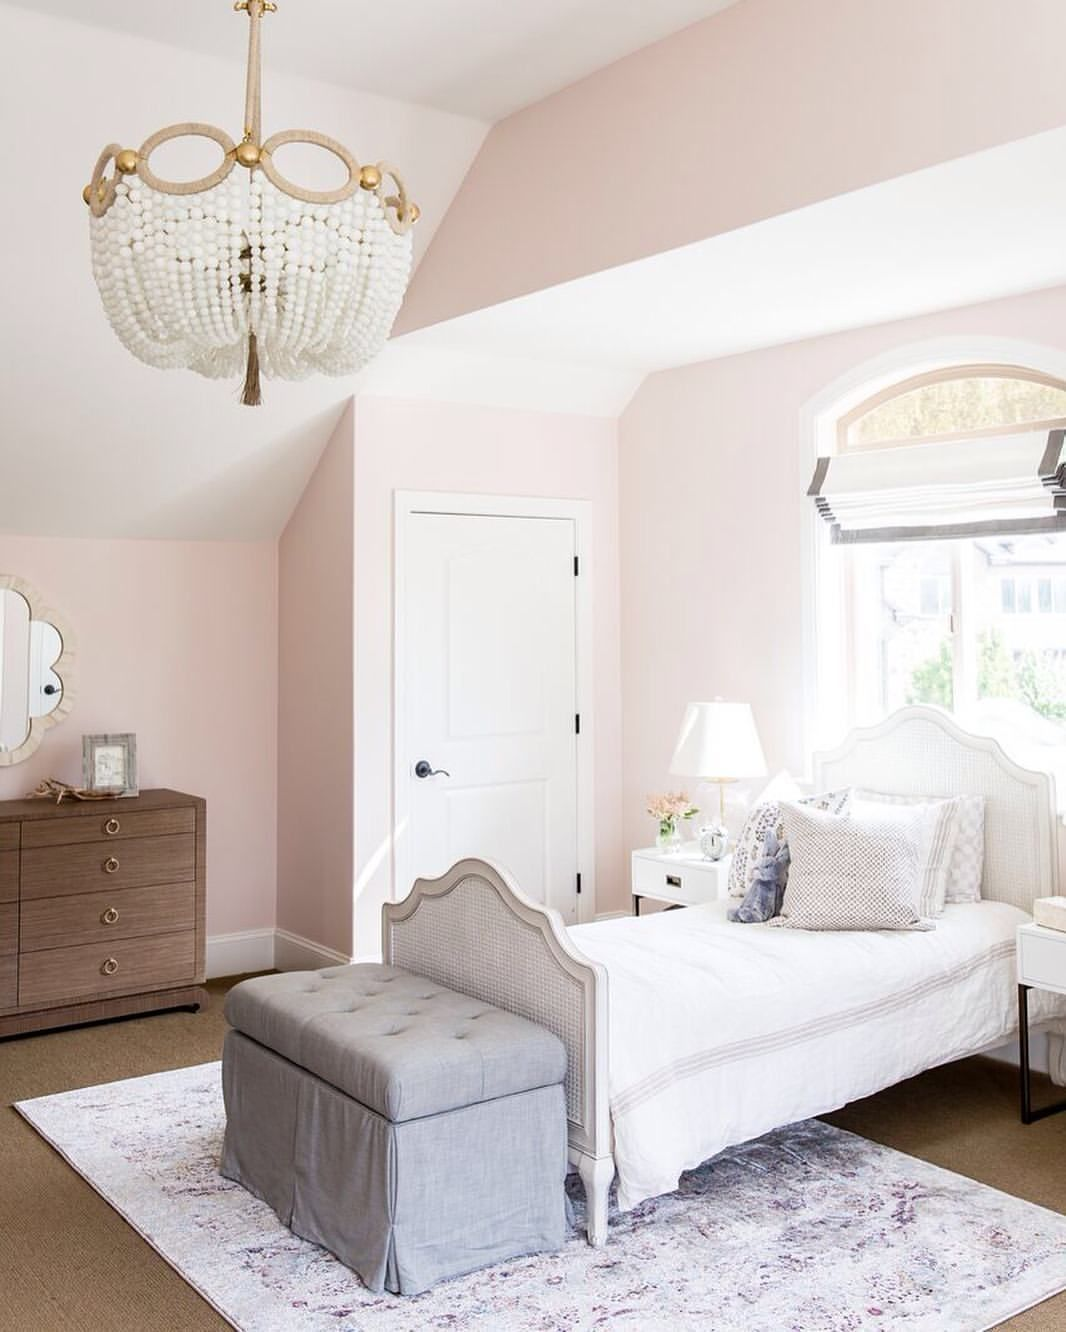 """This room is as sweet as the paint color 🍦 """"Melted Ice"""